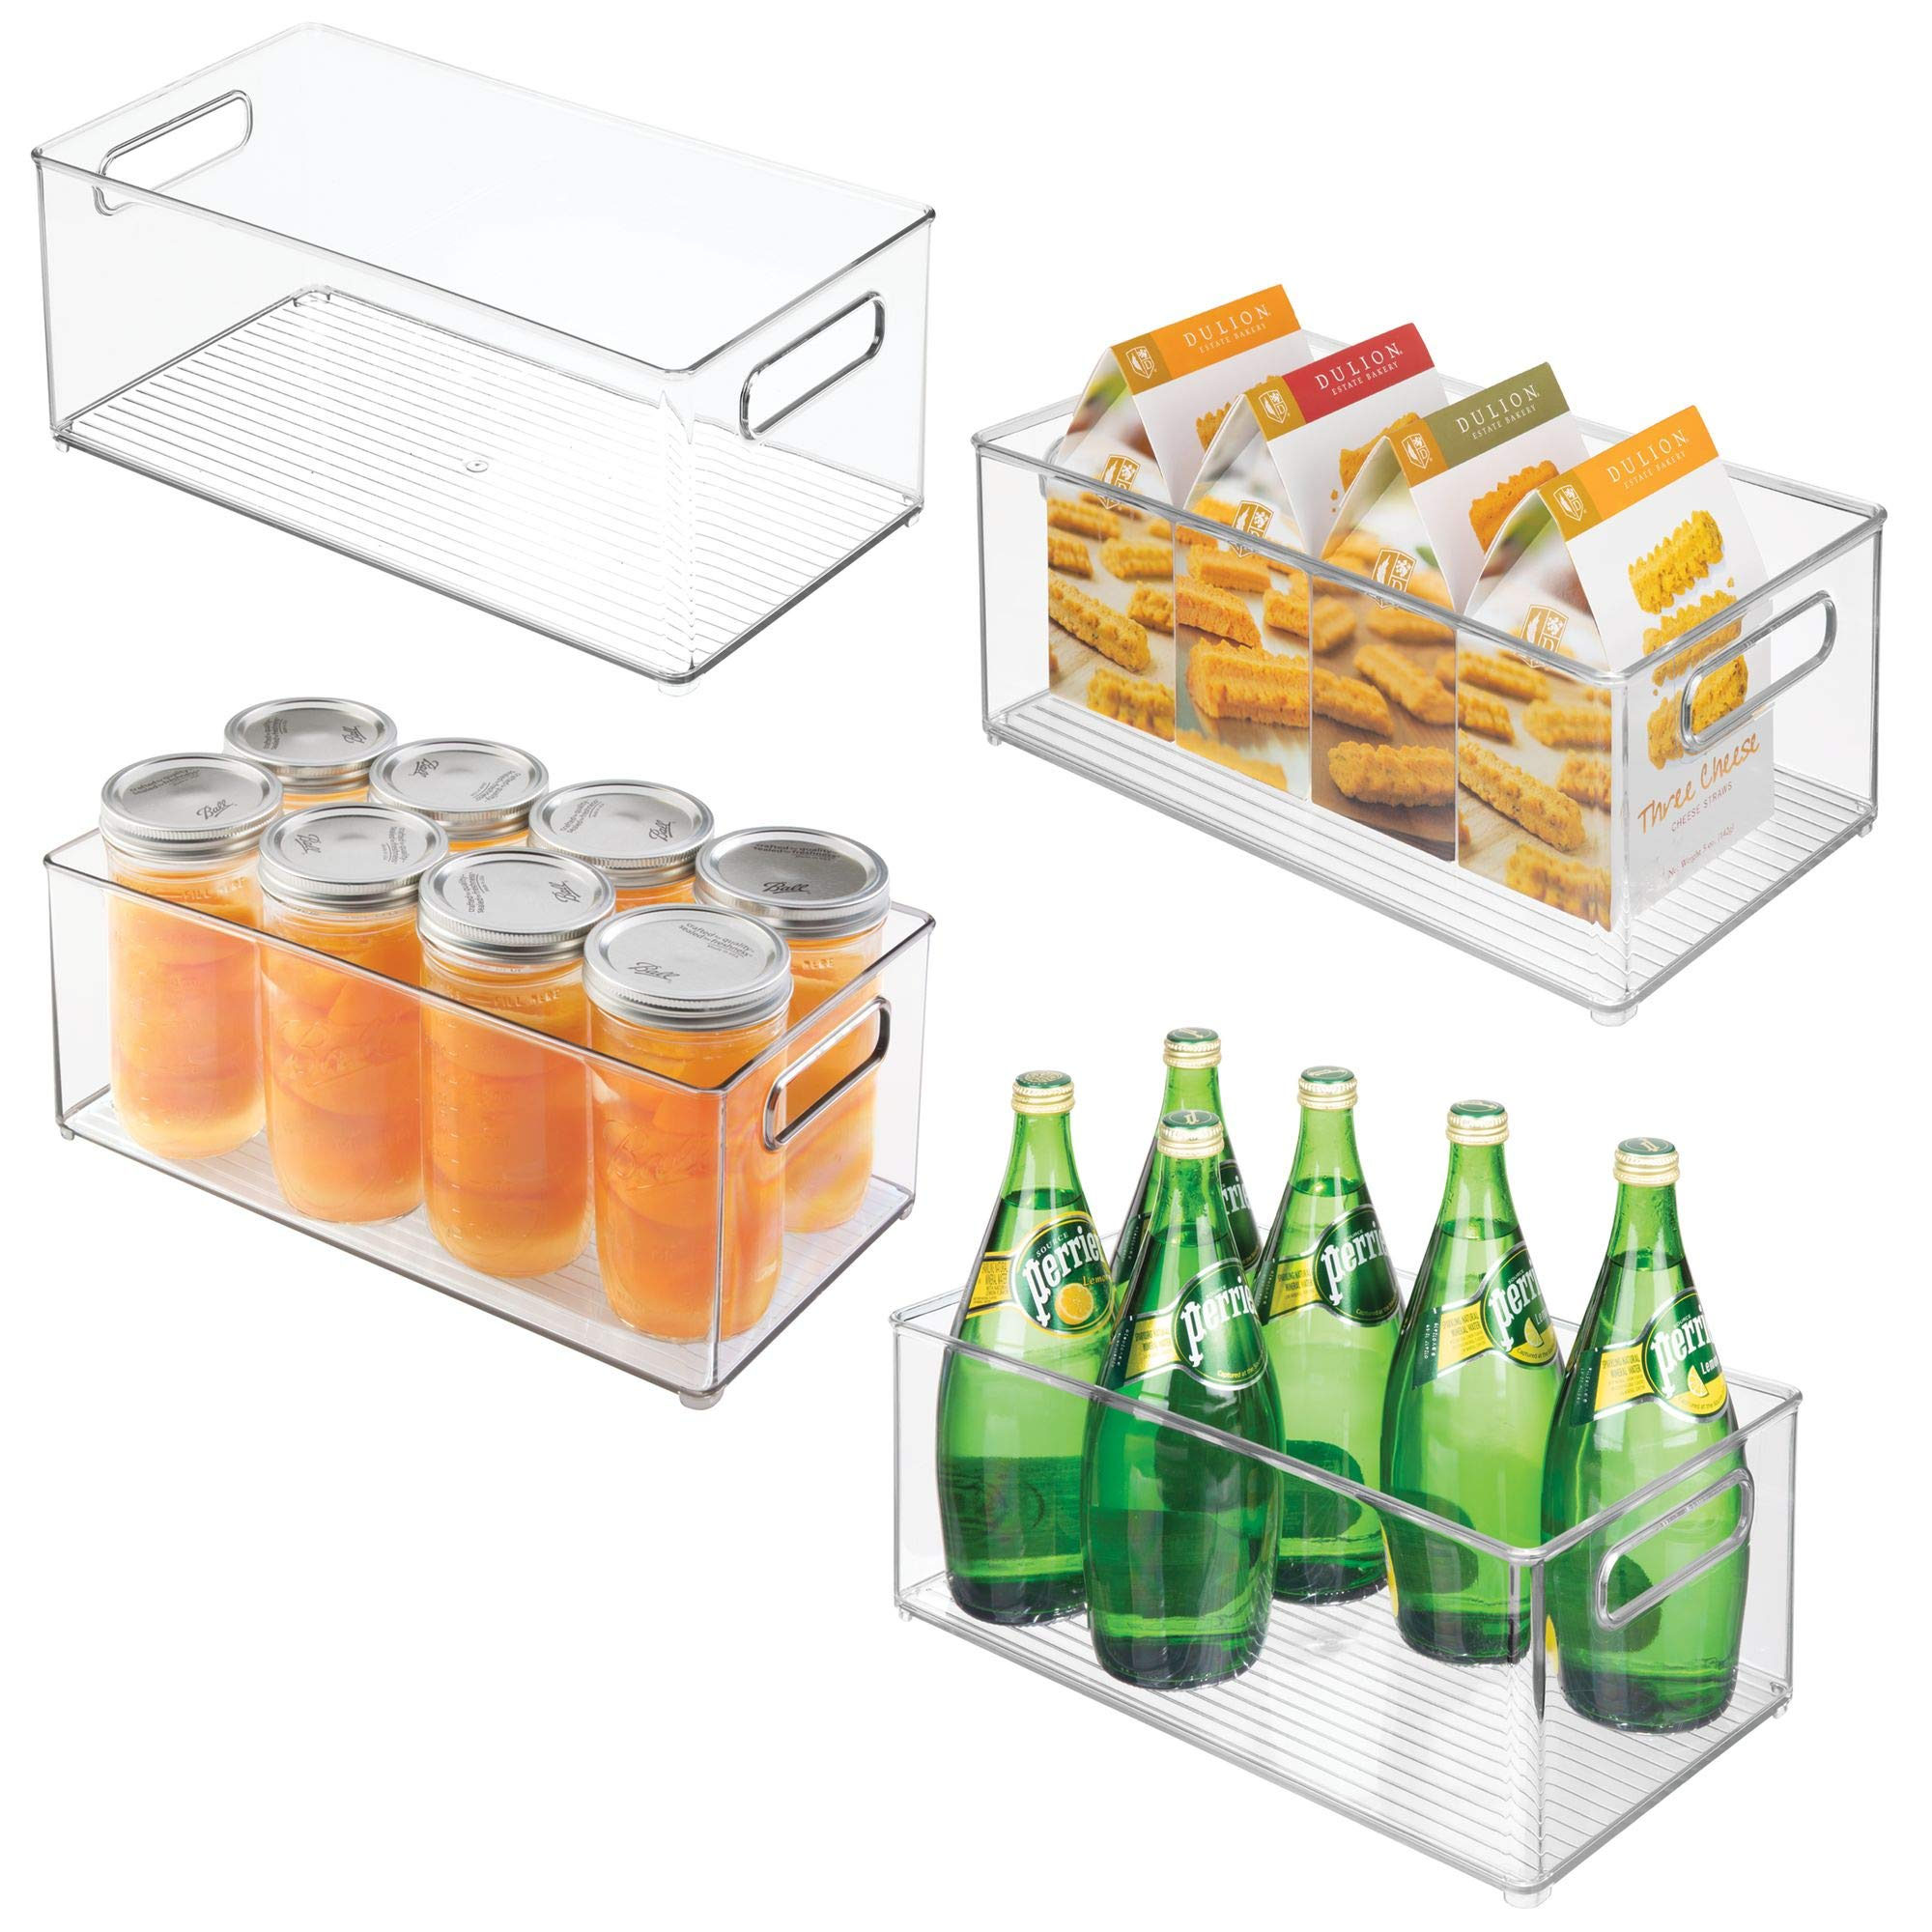 mDesign Stackable Kitchen Storage Organizer Plastic Bins Boxes Containers Holders with Handles, for Pantries, Cabinets, Shelves, Refrigerator, Freezer Fridge Food - 8'' x 6'' x 14.5'', Pack of 4, Clear